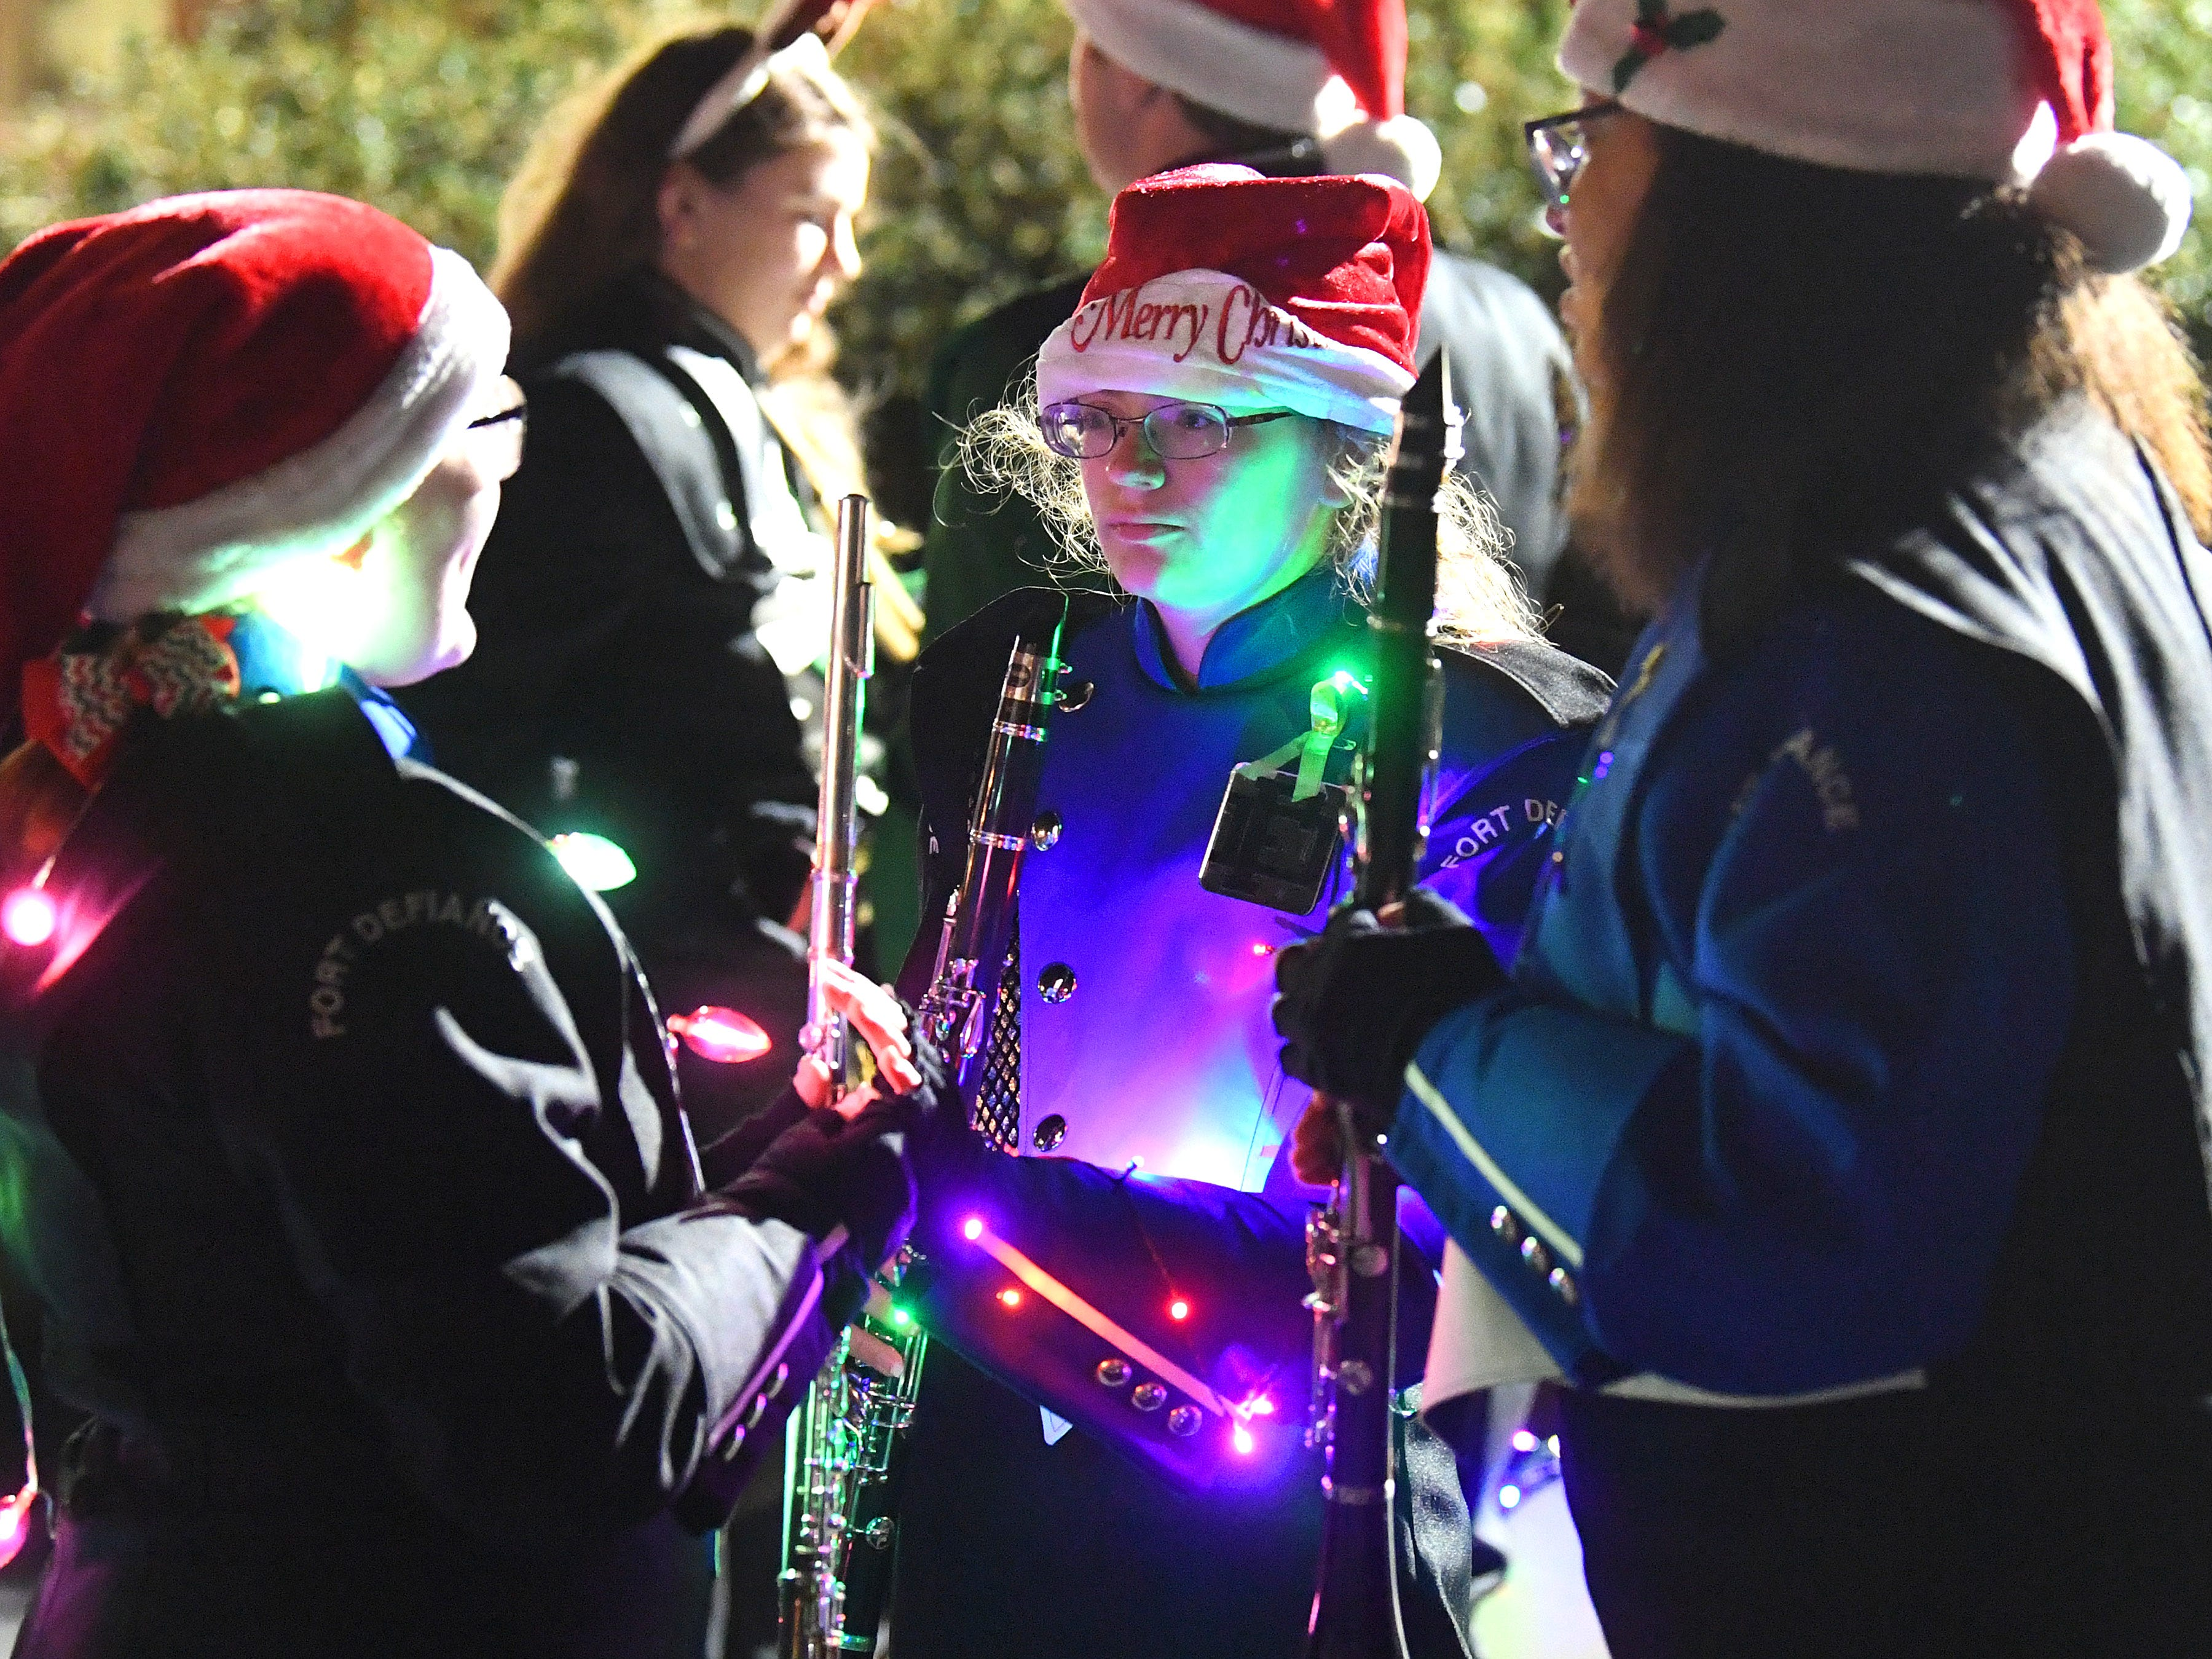 Members of Fort Defiance High School's marching band rehearse together while waiting for the Staunton Christmas Parade to begin on Monday, Nov. 26, 2018.